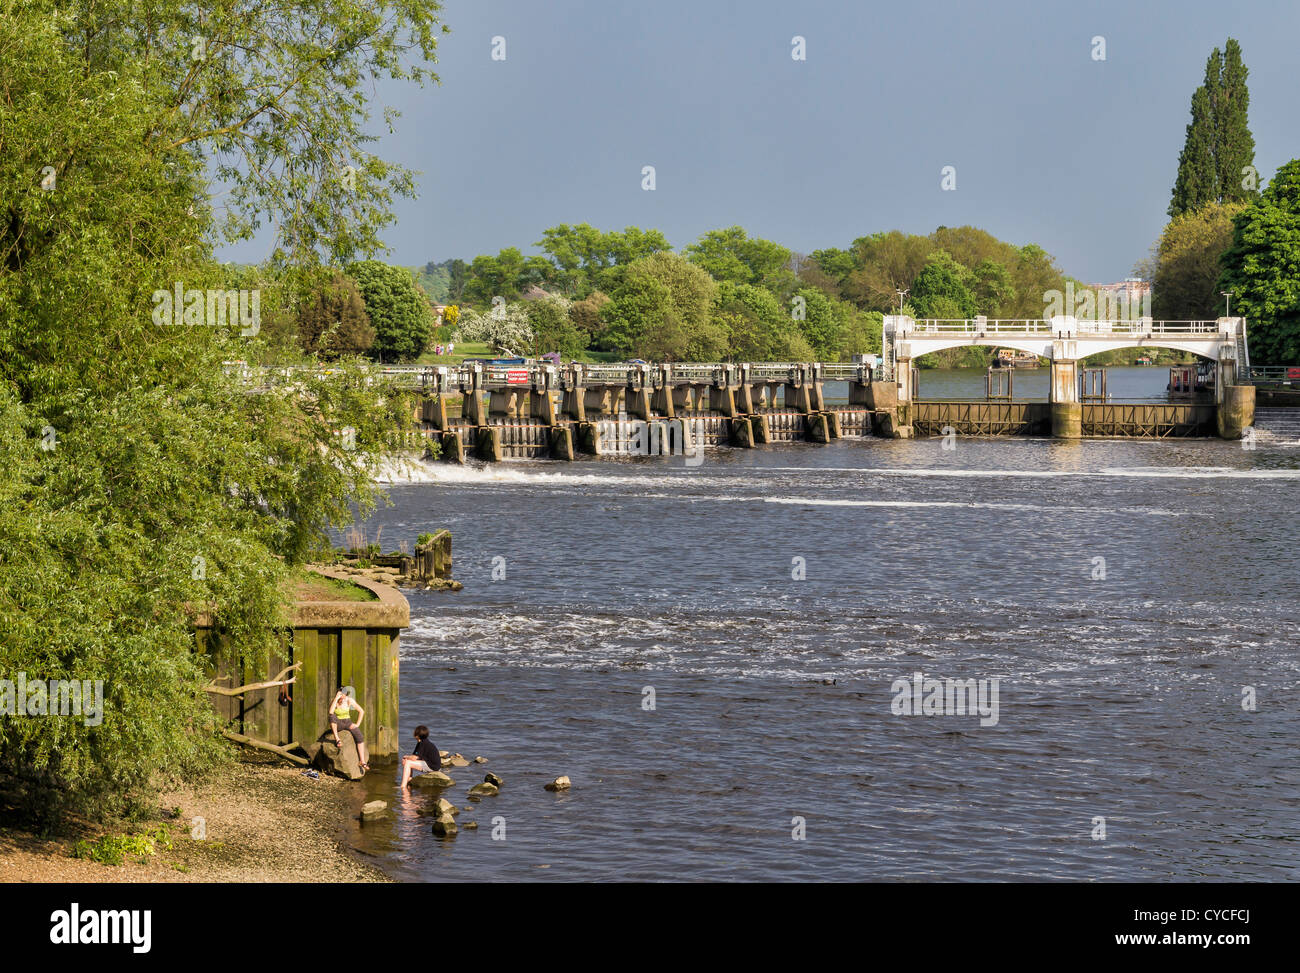 Two people sitting on the banks of the Thames river at Teddington Lock Stock Photo